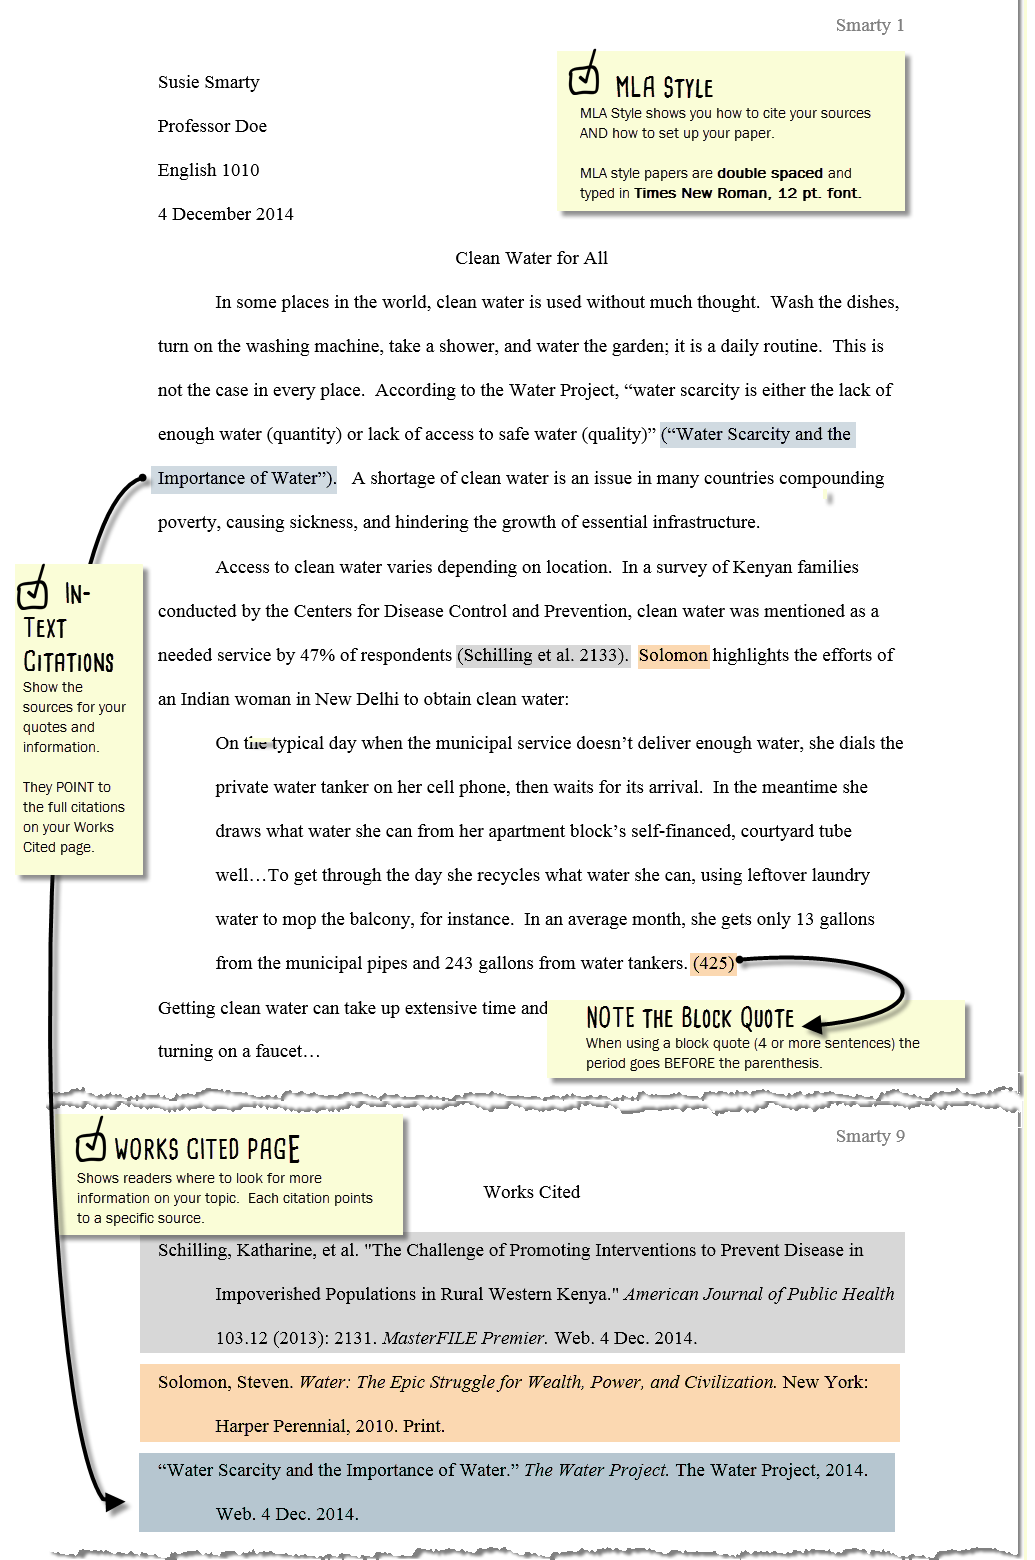 mla format essay using quotes Jerz's literacy weblog: step-by-step tips for writing research essays using mla format paper, you are not to use i,me,or we correct.